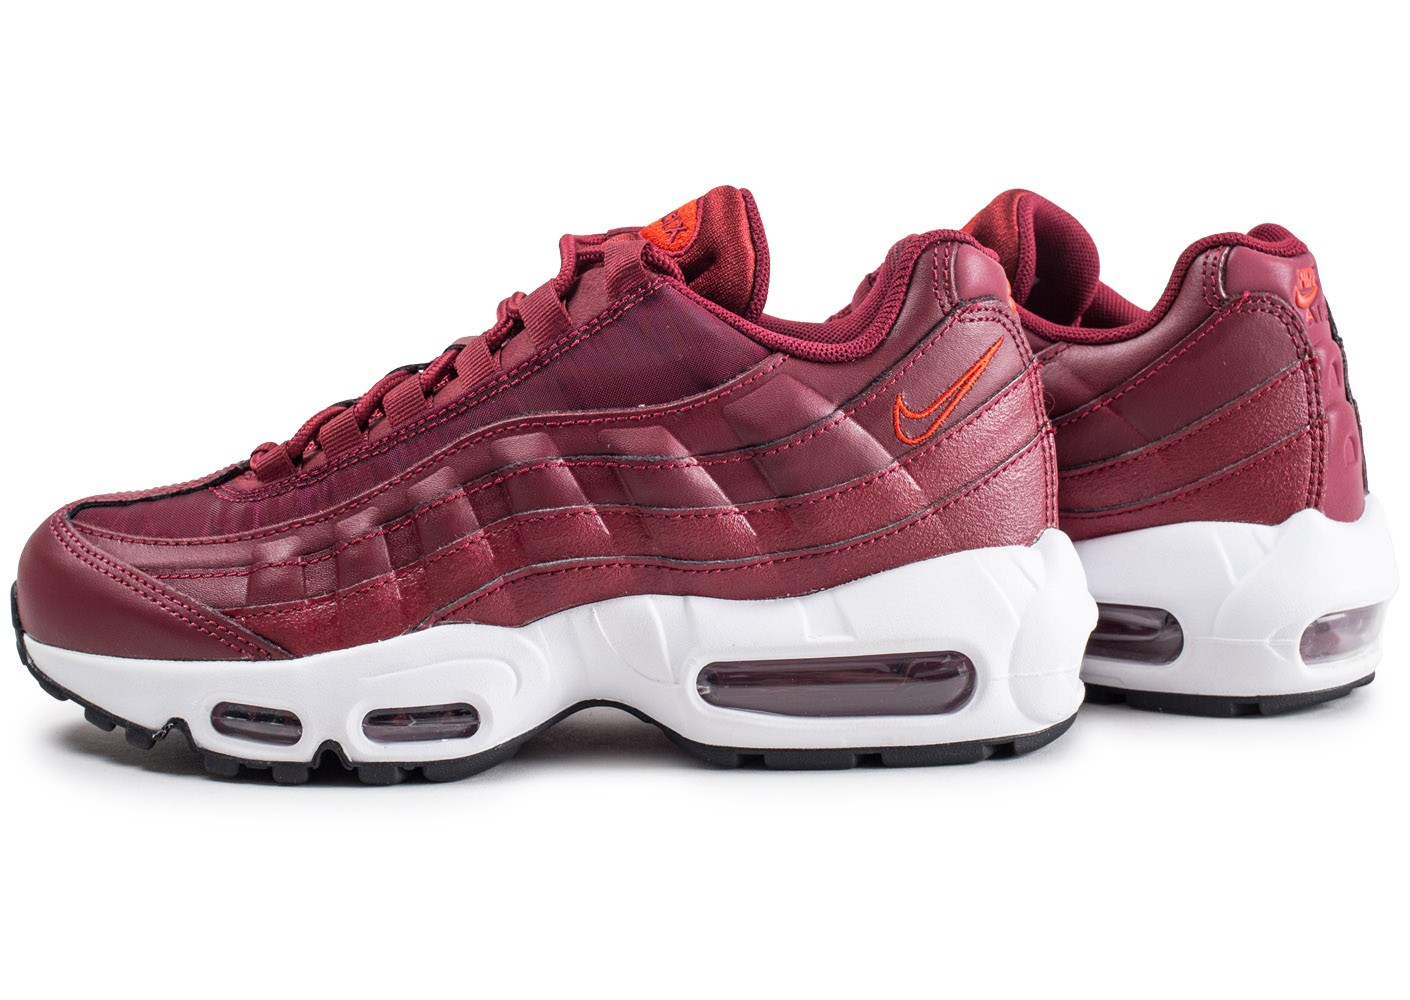 Nike Air Max 95 Habanero femme - Chaussures Baskets femme ...